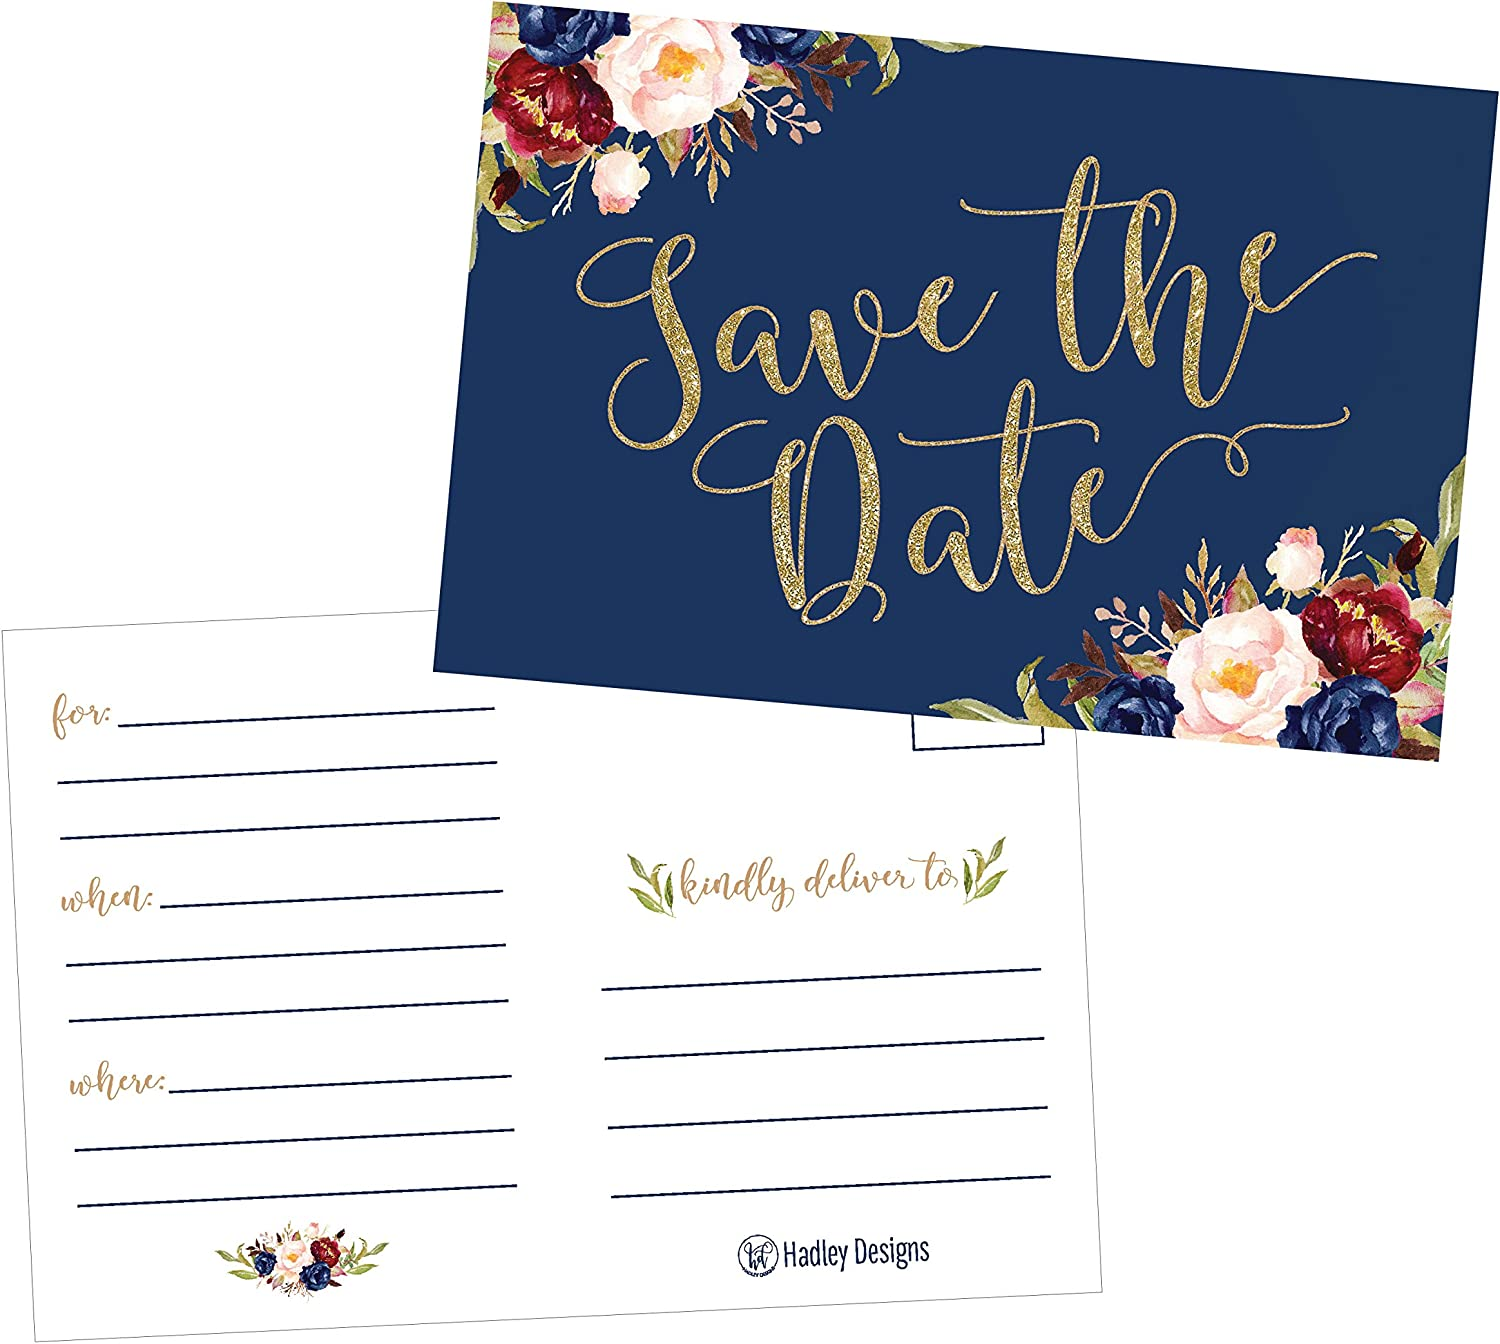 Amazon Com 25 Navy Floral Save The Date Cards For Wedding Engagement Anniversary Baby Shower Birthday Party Flower Save The Dates Postcard Invitations Simple Blank Event Announcements Health Personal Care